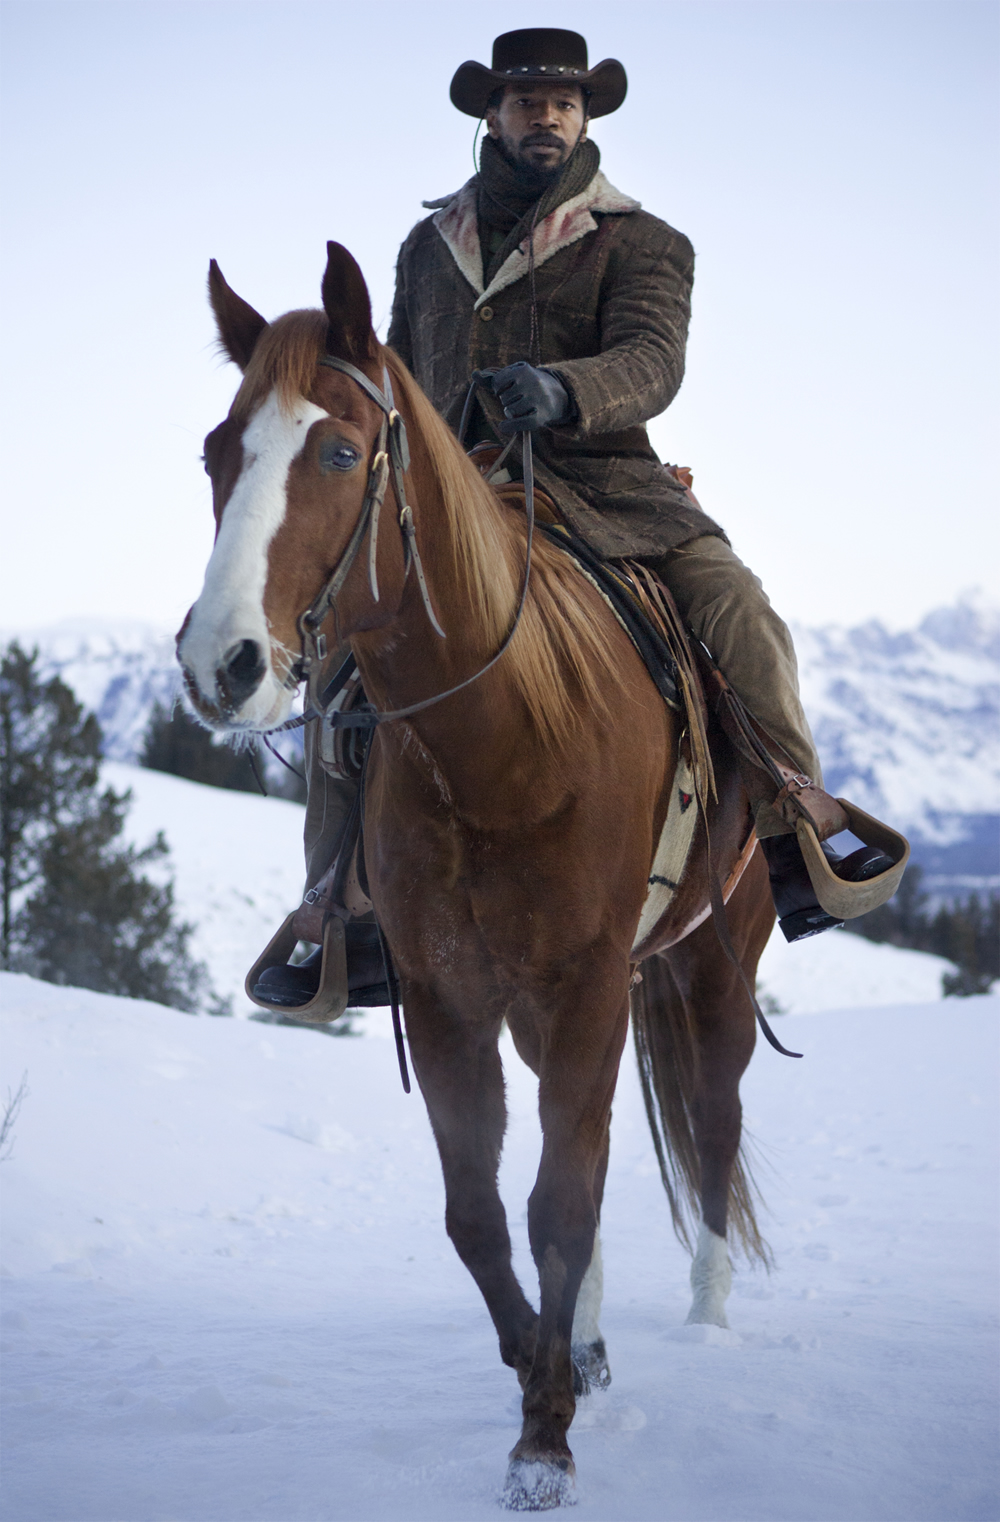 Fall Pictures Free Wallpaper New Batch Of Django Unchained Stills Reveal Don Johnson